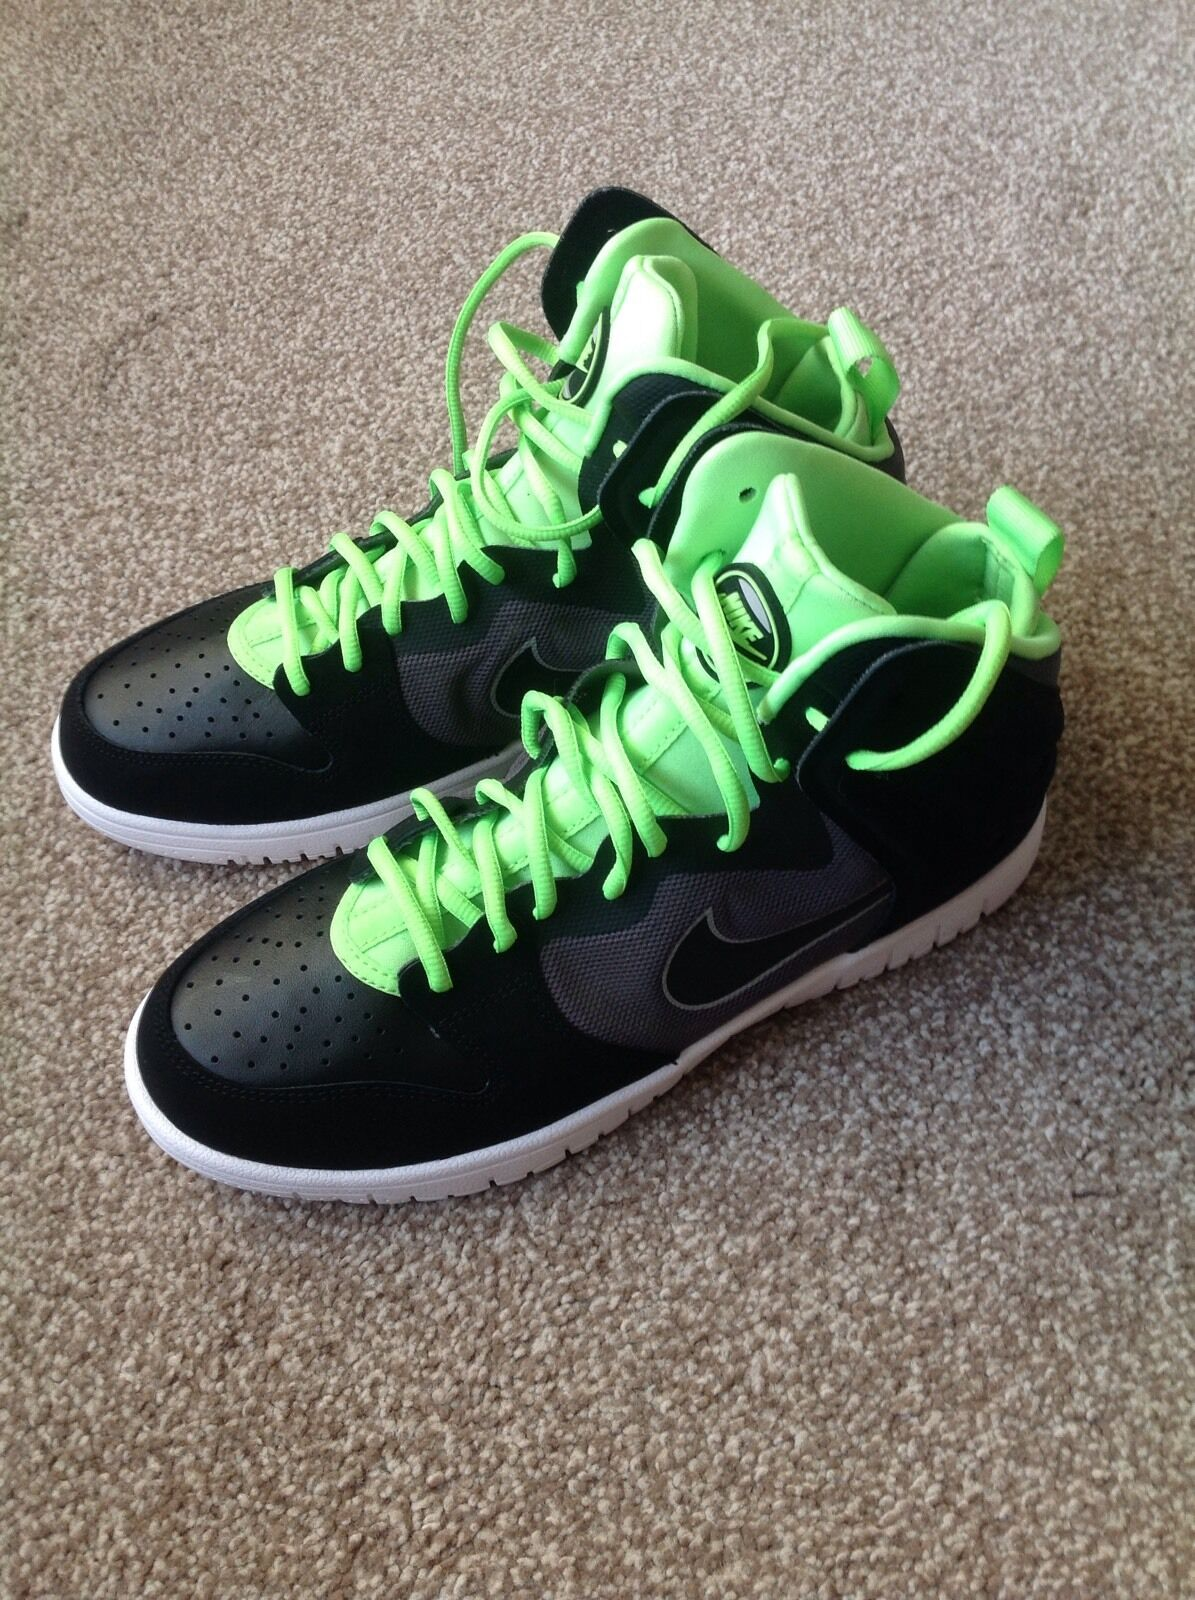 Nike Dunk Free Basketball Boots Comfortable New shoes for men and women, limited time discount